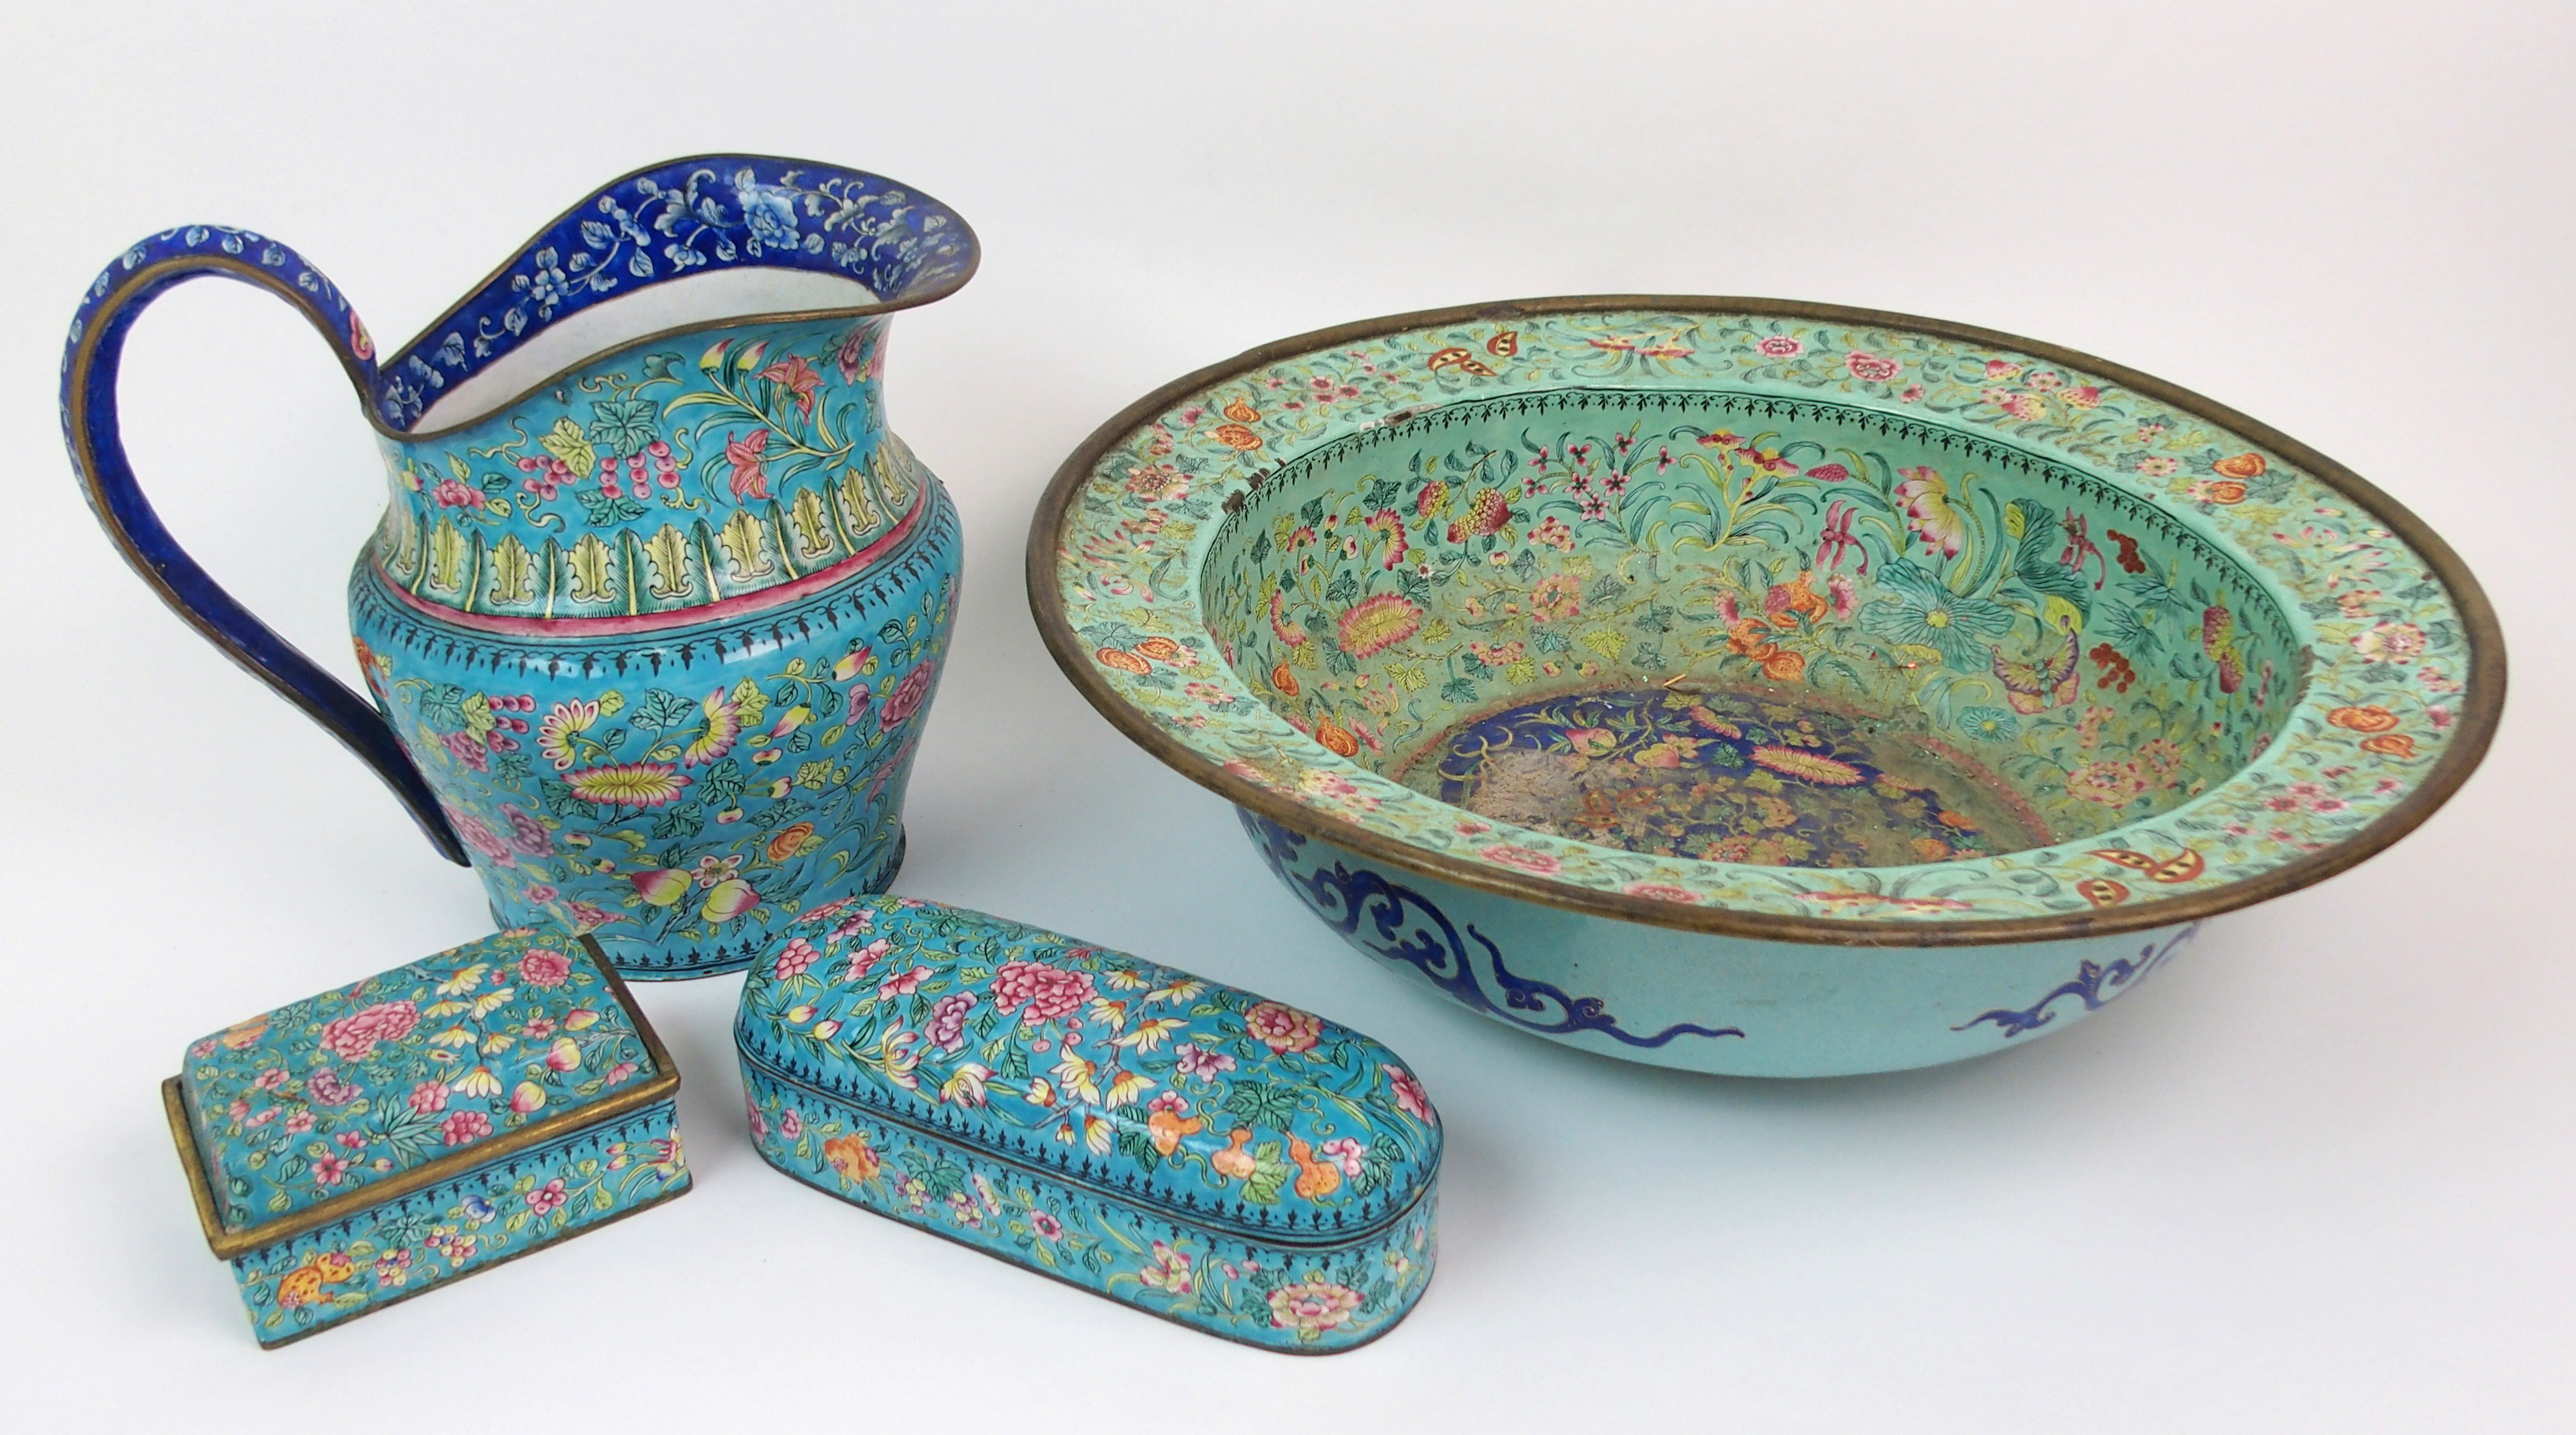 Lot 5 - A CANTONESE ENAMEL WASH BASIN painted allover with fruit and flowers (damages), 42.5cm diameter,